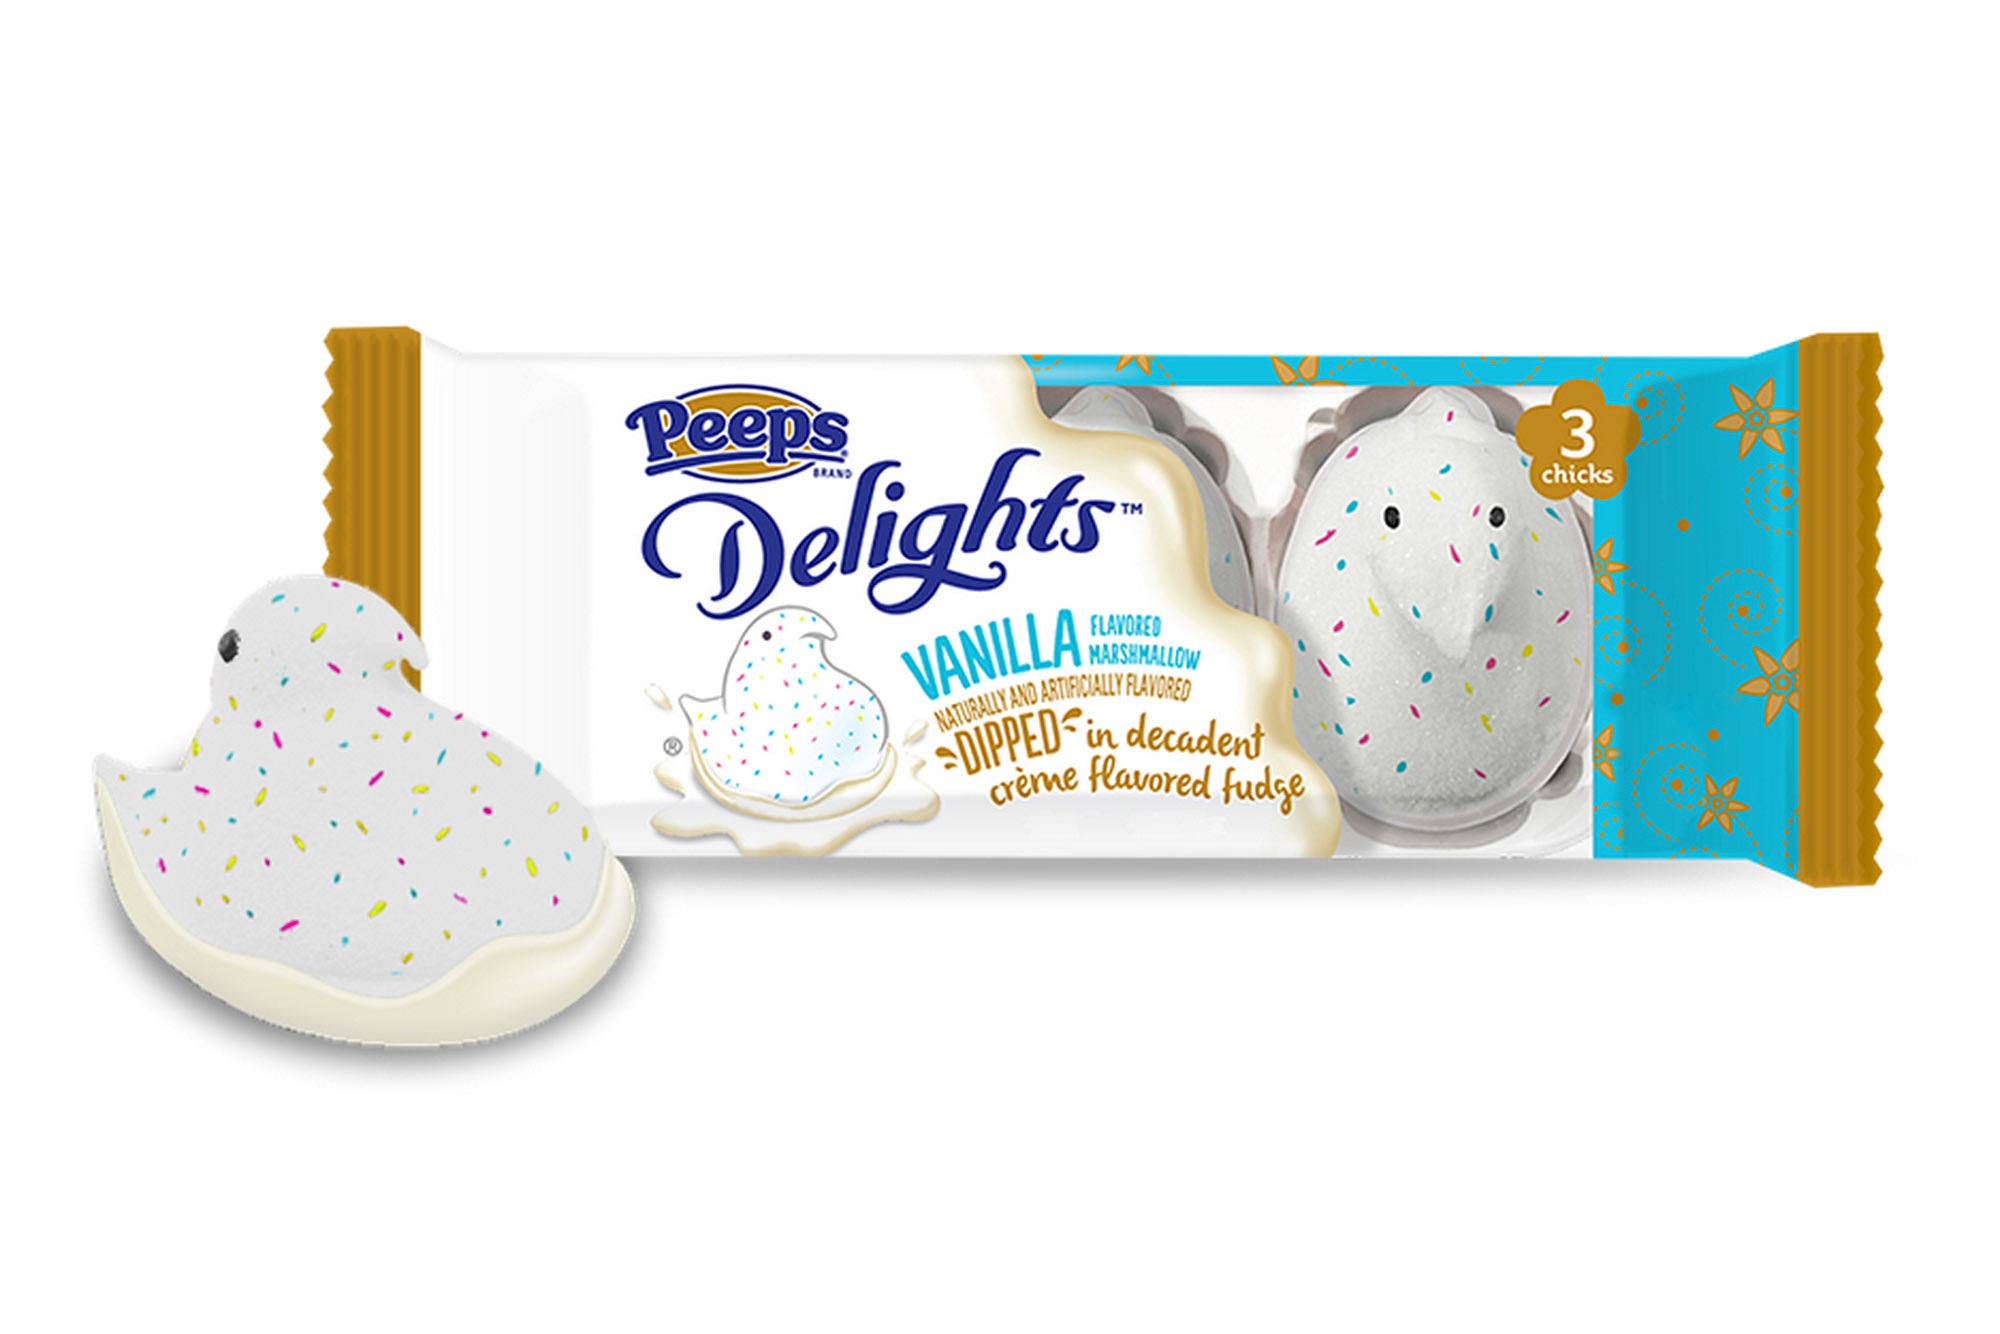 Peeps Delights Vanilla, Dipped in Crème Flavored Fudge